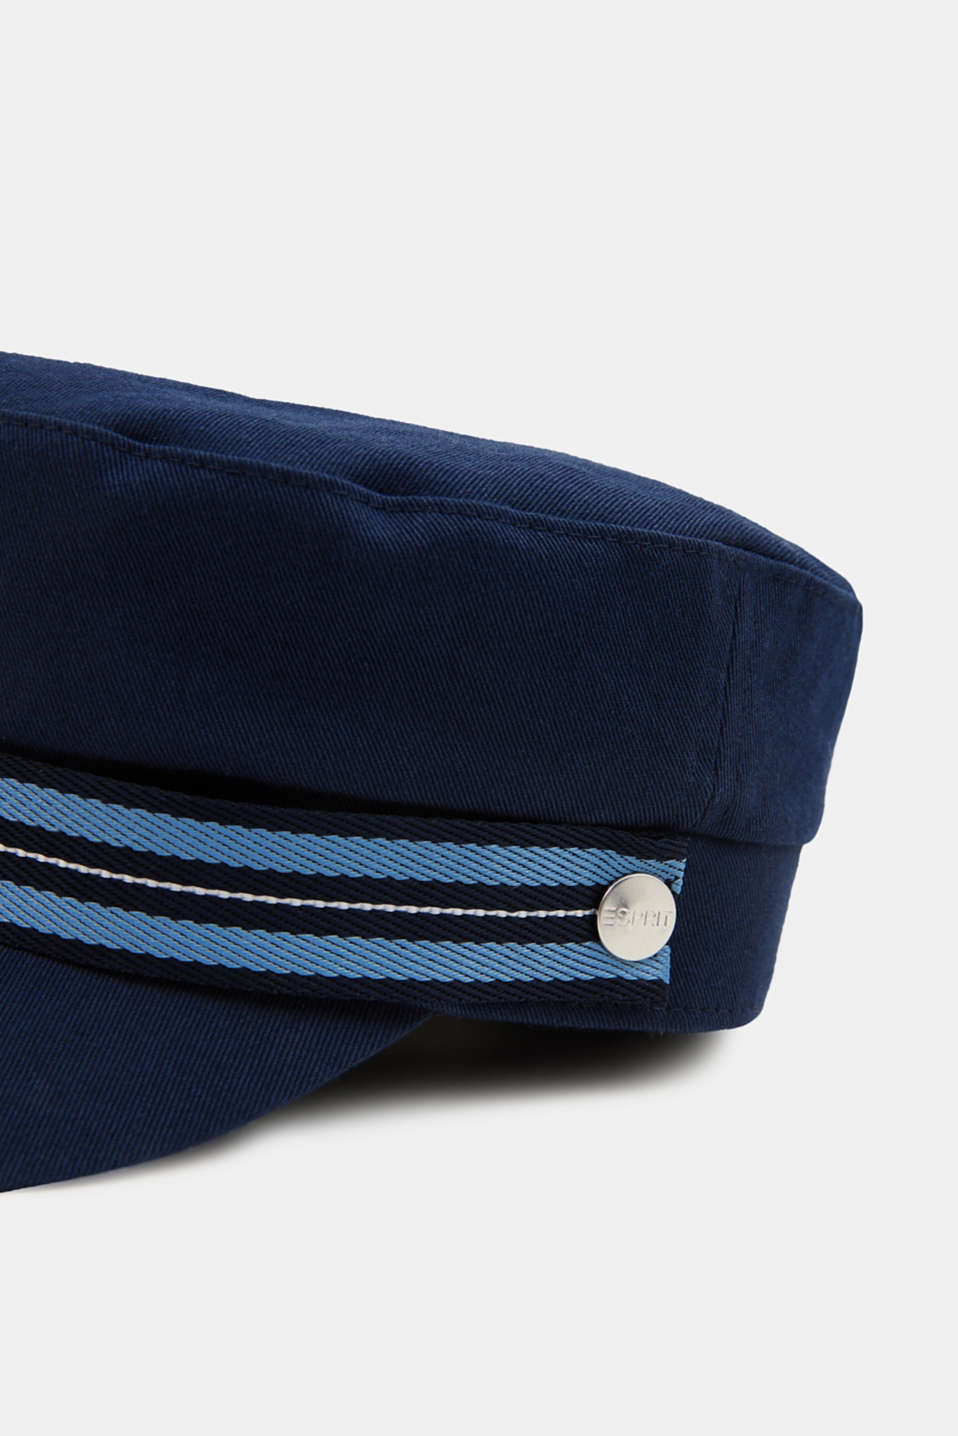 Sailor's cap made of 100% cotton, NAVY, detail image number 1